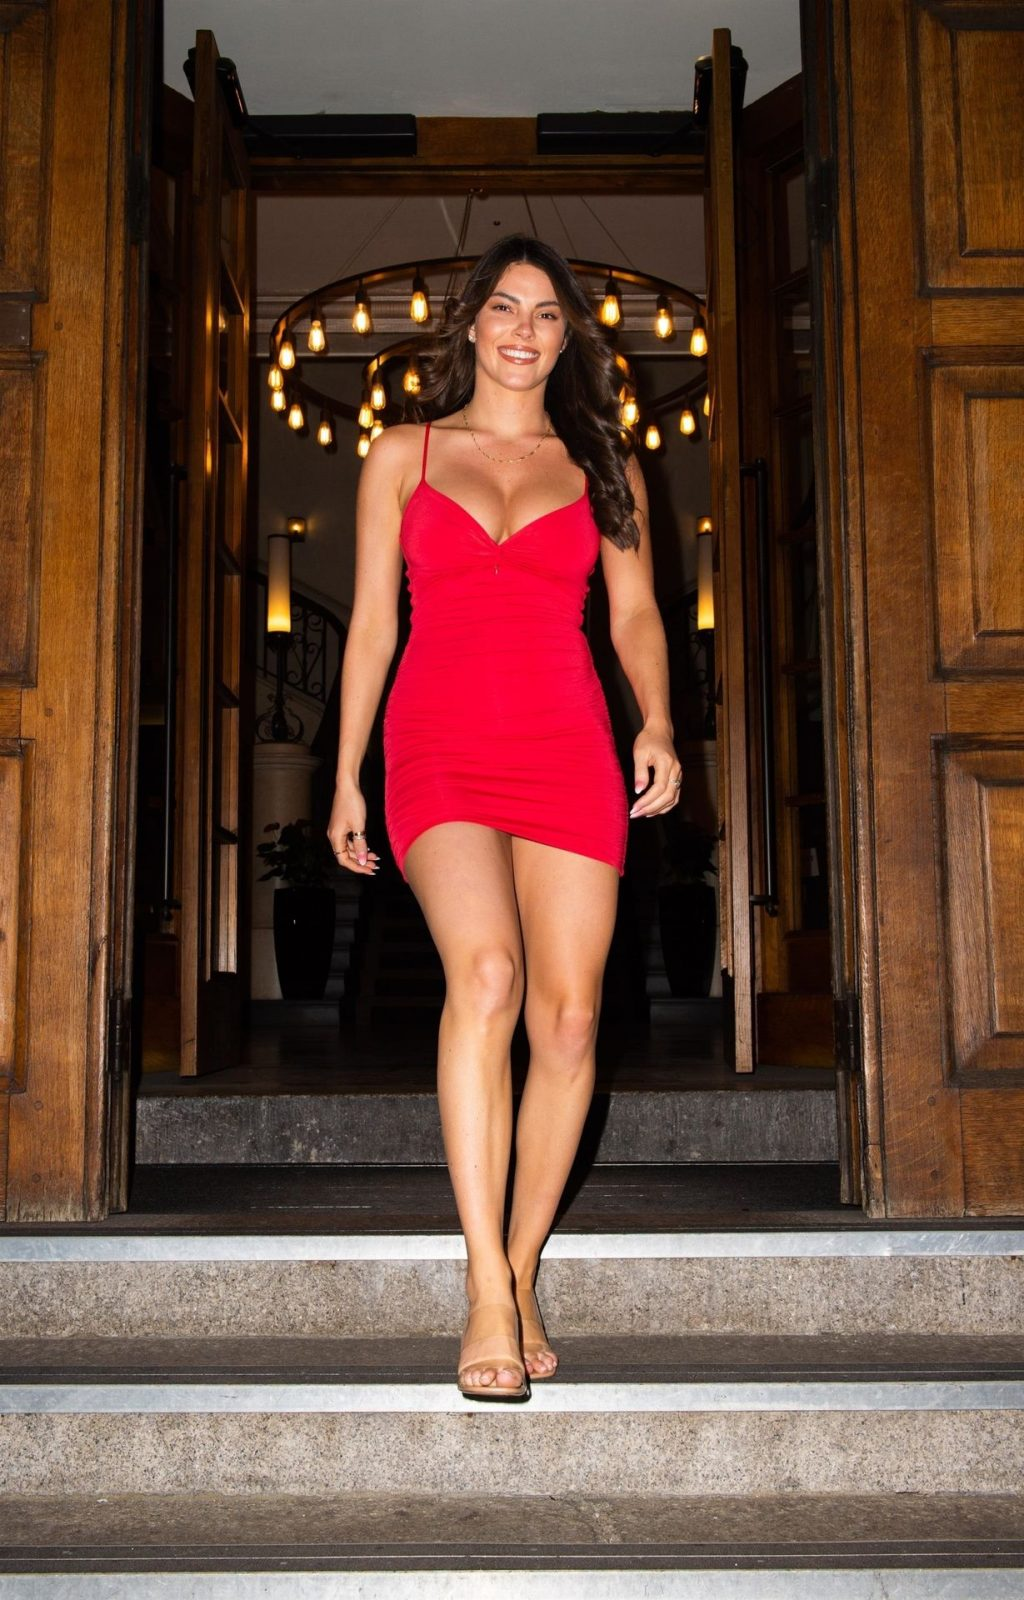 Busty Rebecca Gormley is Seen Leaving the Courthouse Hotel in Shoreditch (14 Photos)